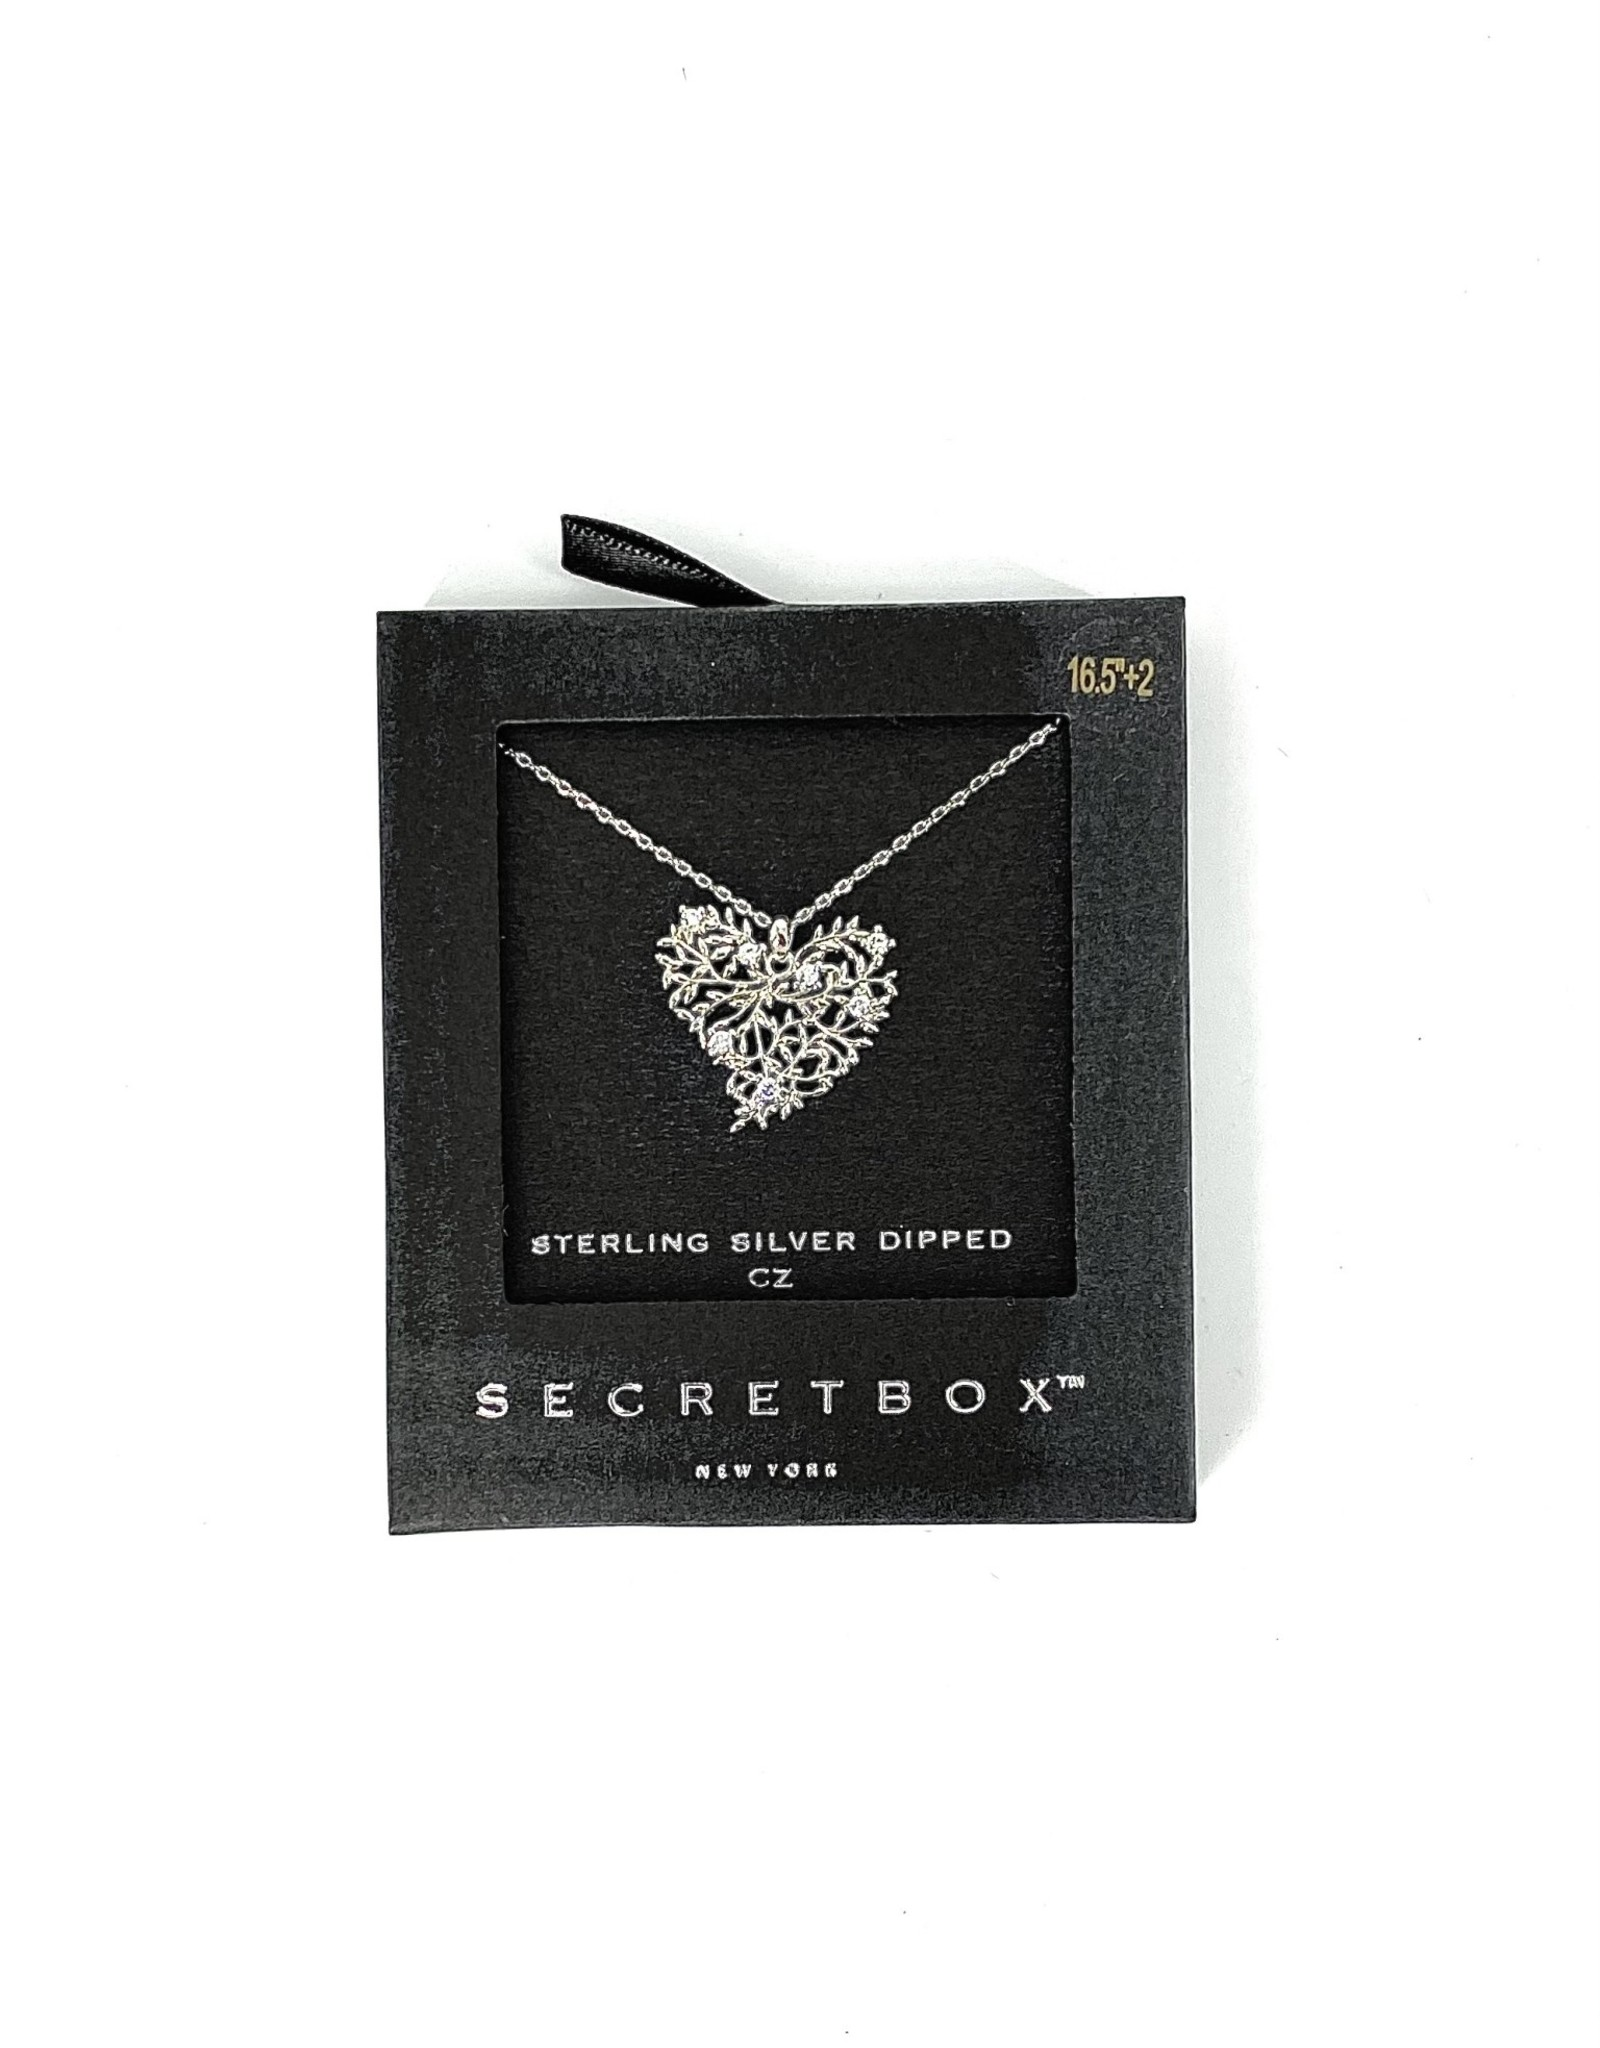 NECKLACE HEART EMBOSSED STERLING SILVER DIPPED CZ